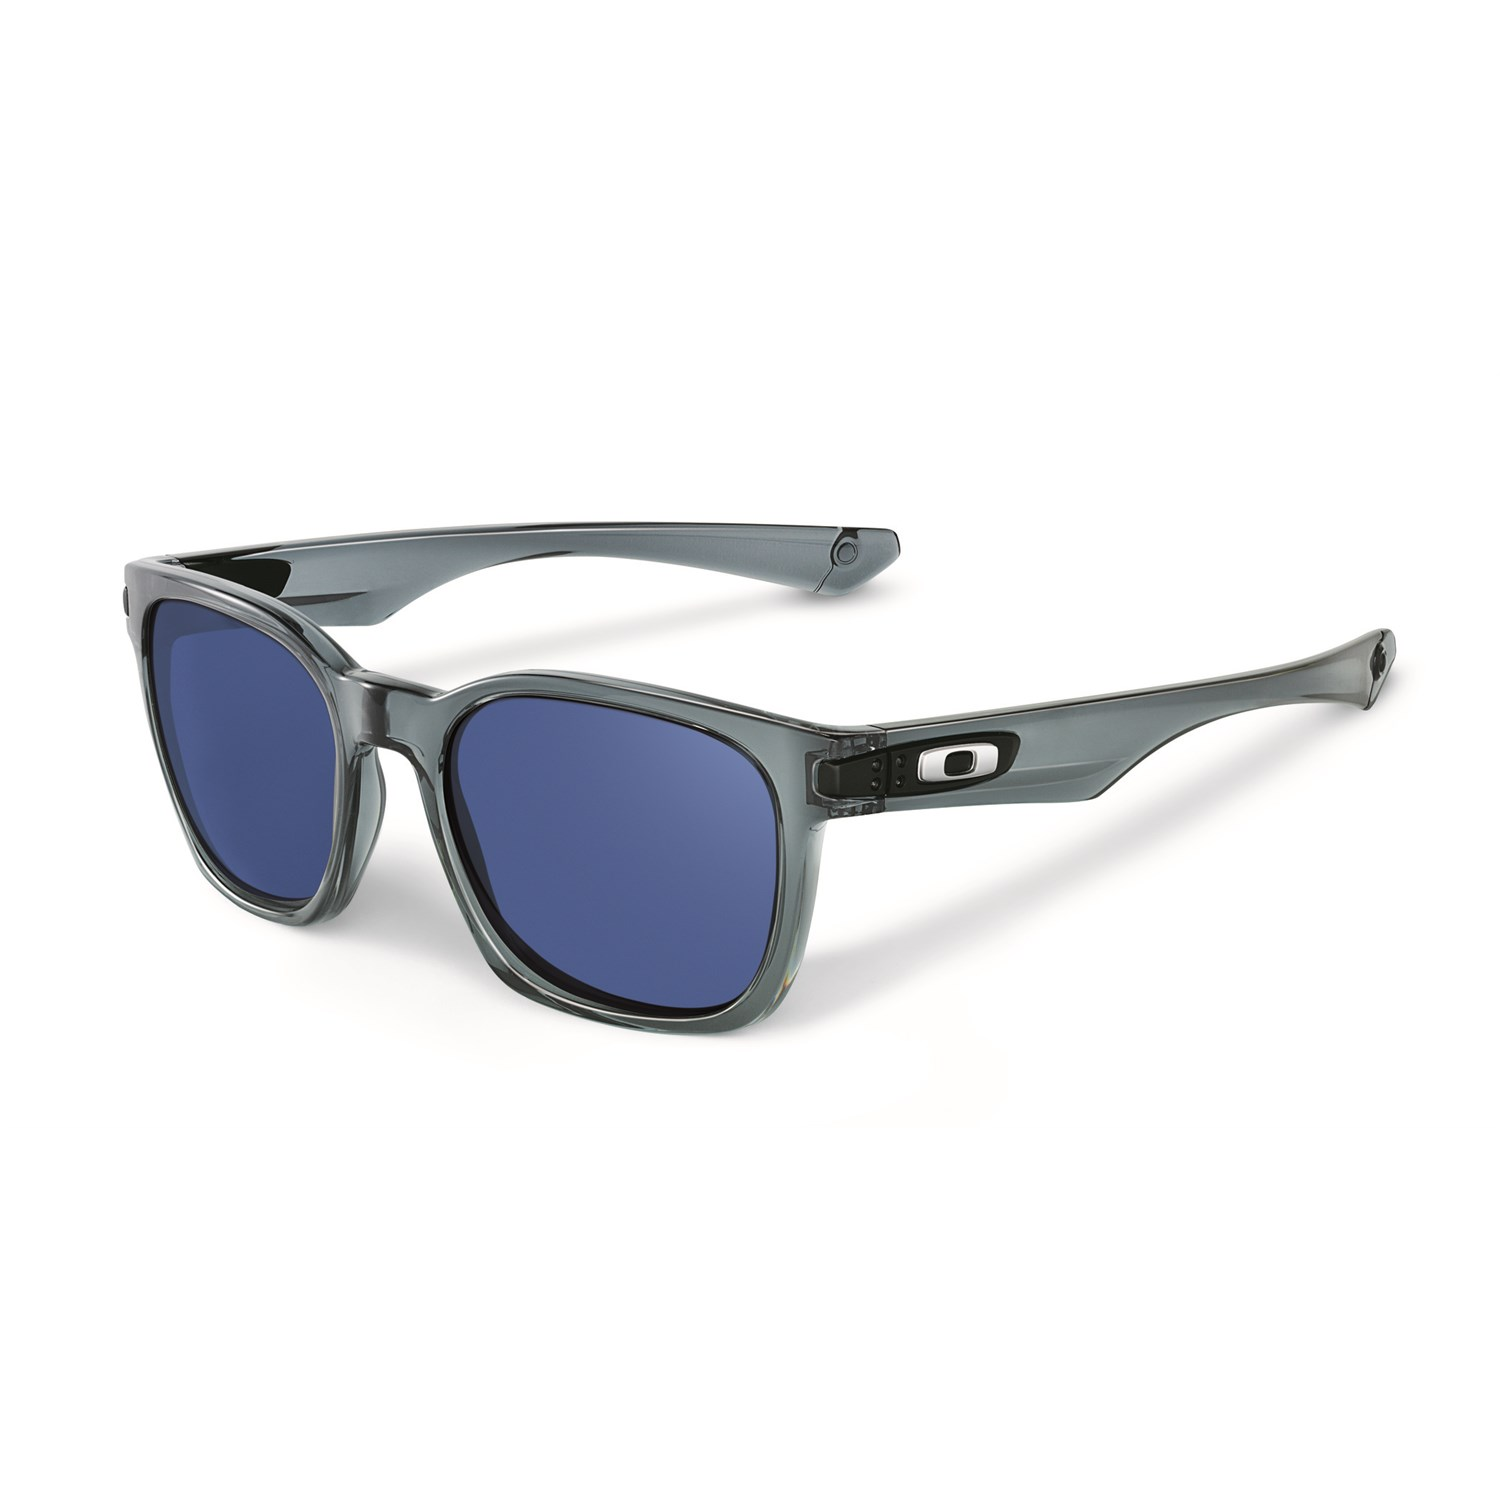 Oakley Glasses Frame Size : Oakley Garage Rock Frame Size